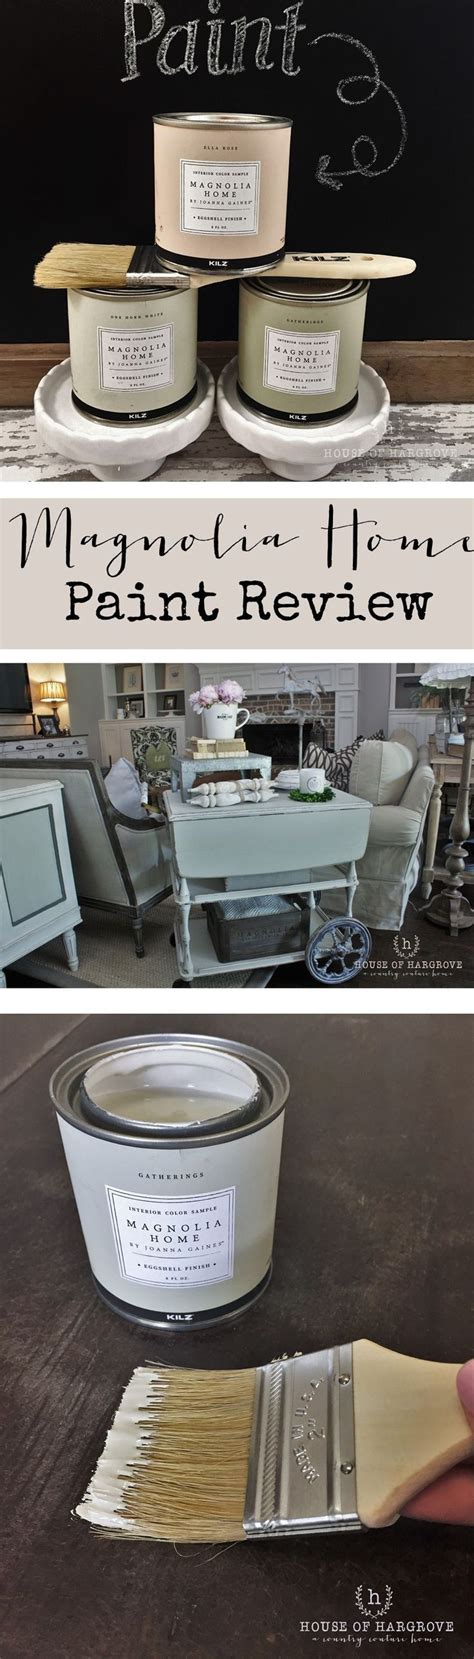 25 best ideas about joanna gaines blog on pinterest best 25 joanna gaines blog ideas on pinterest magnolia